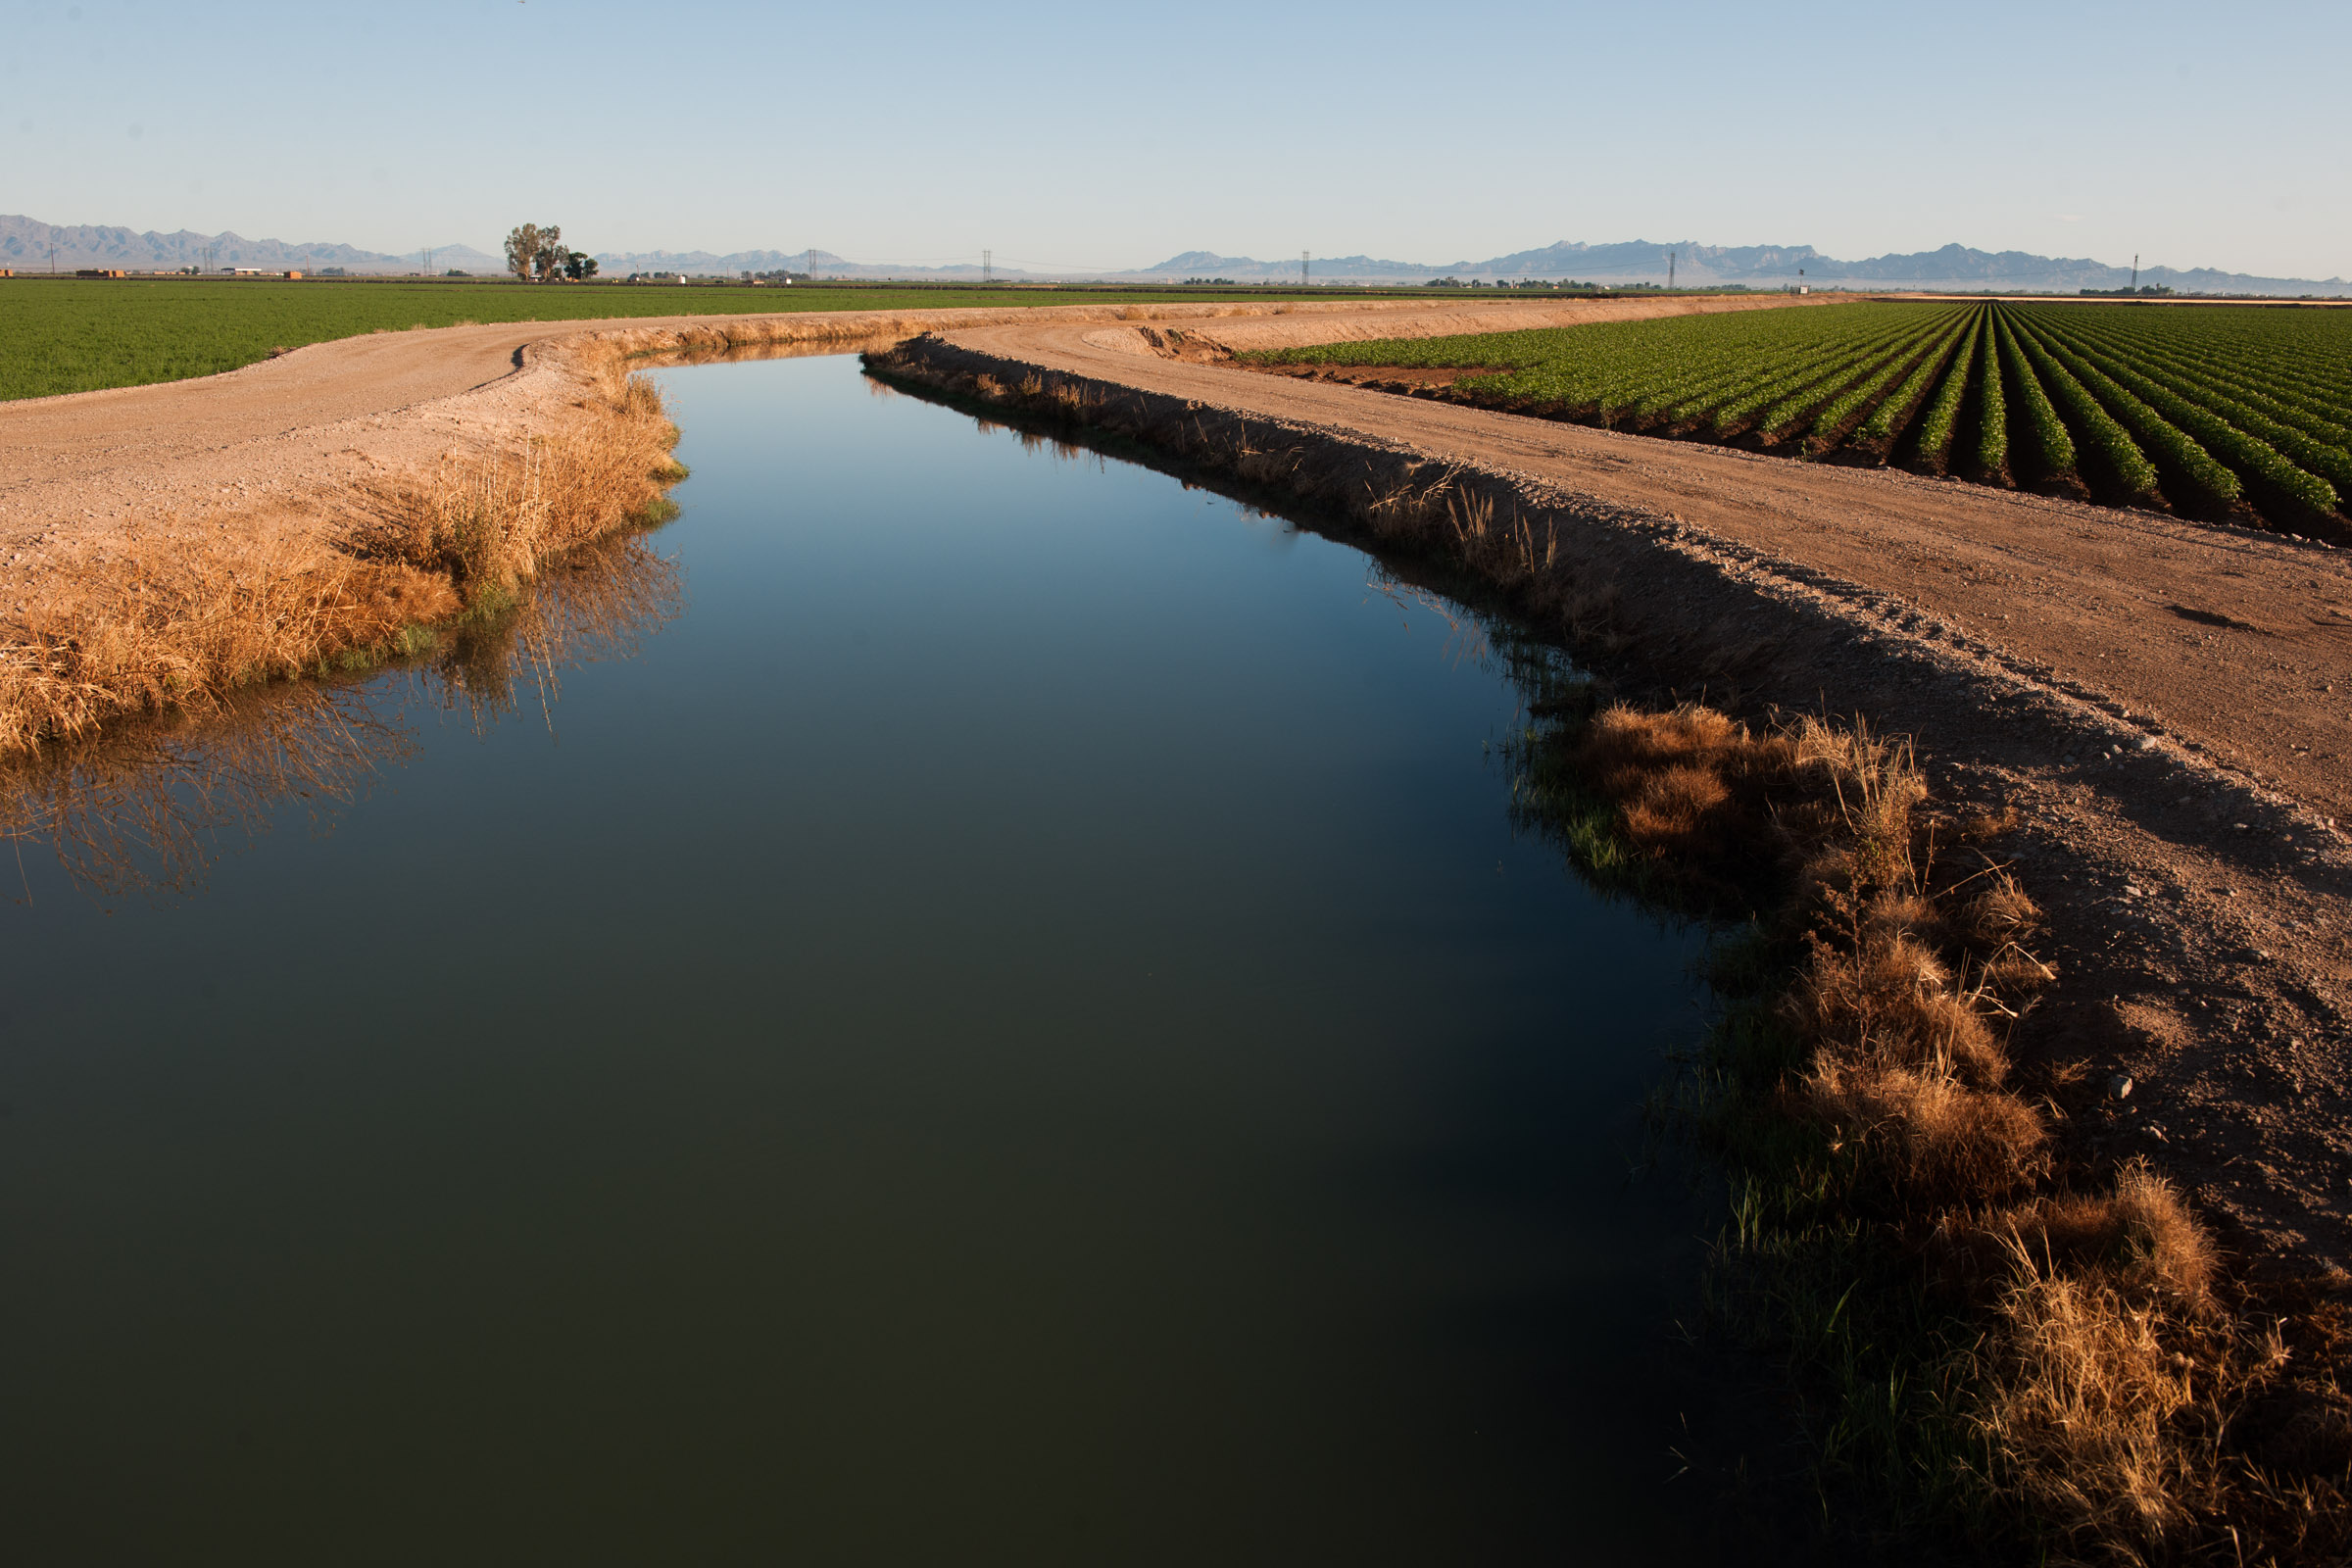 A canal moving water. Canals like this one may be used to move water in a water market.